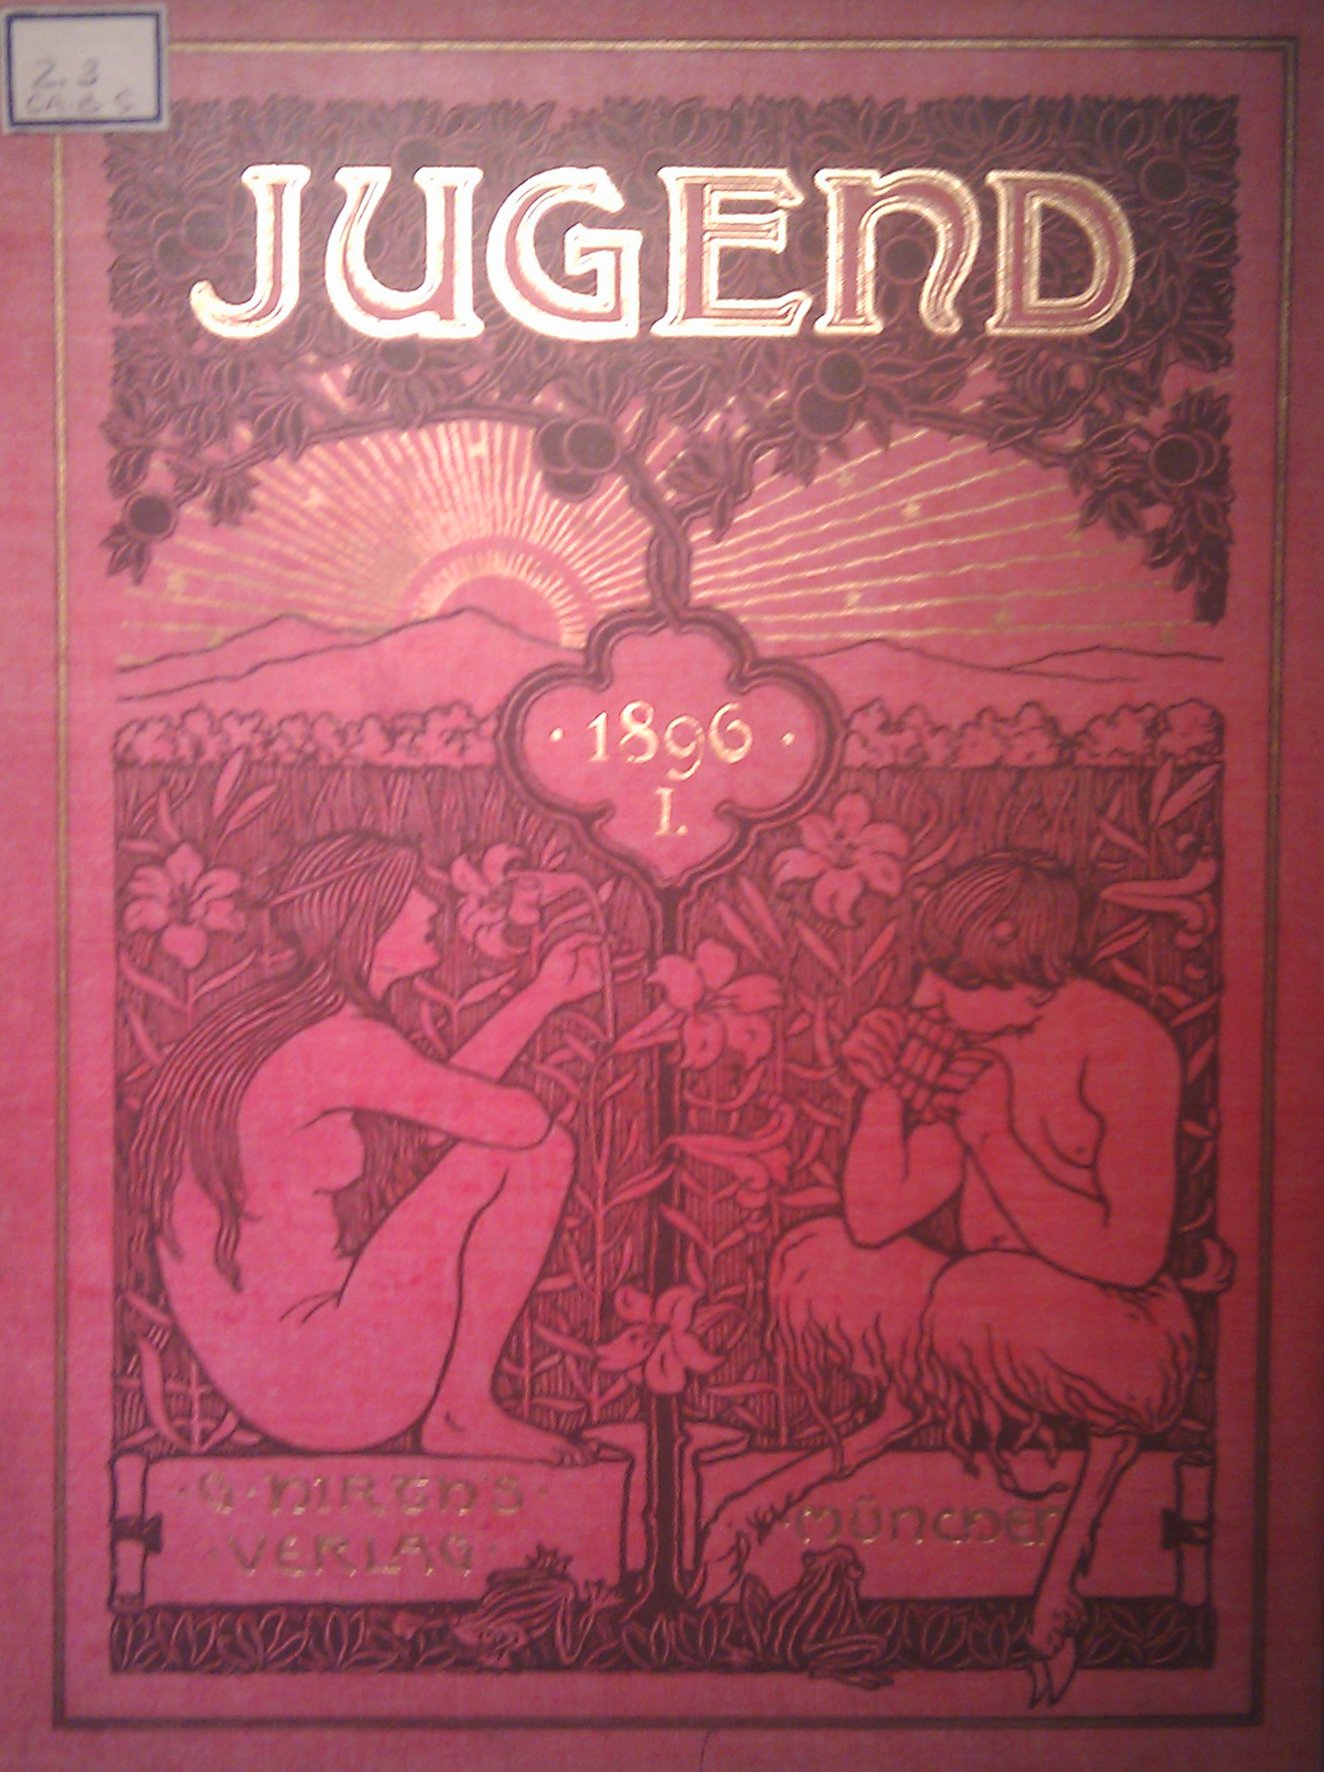 Image of the cover of the journal 'Jugend' No. 1 (1896), found at the Courtauld Institute of Art